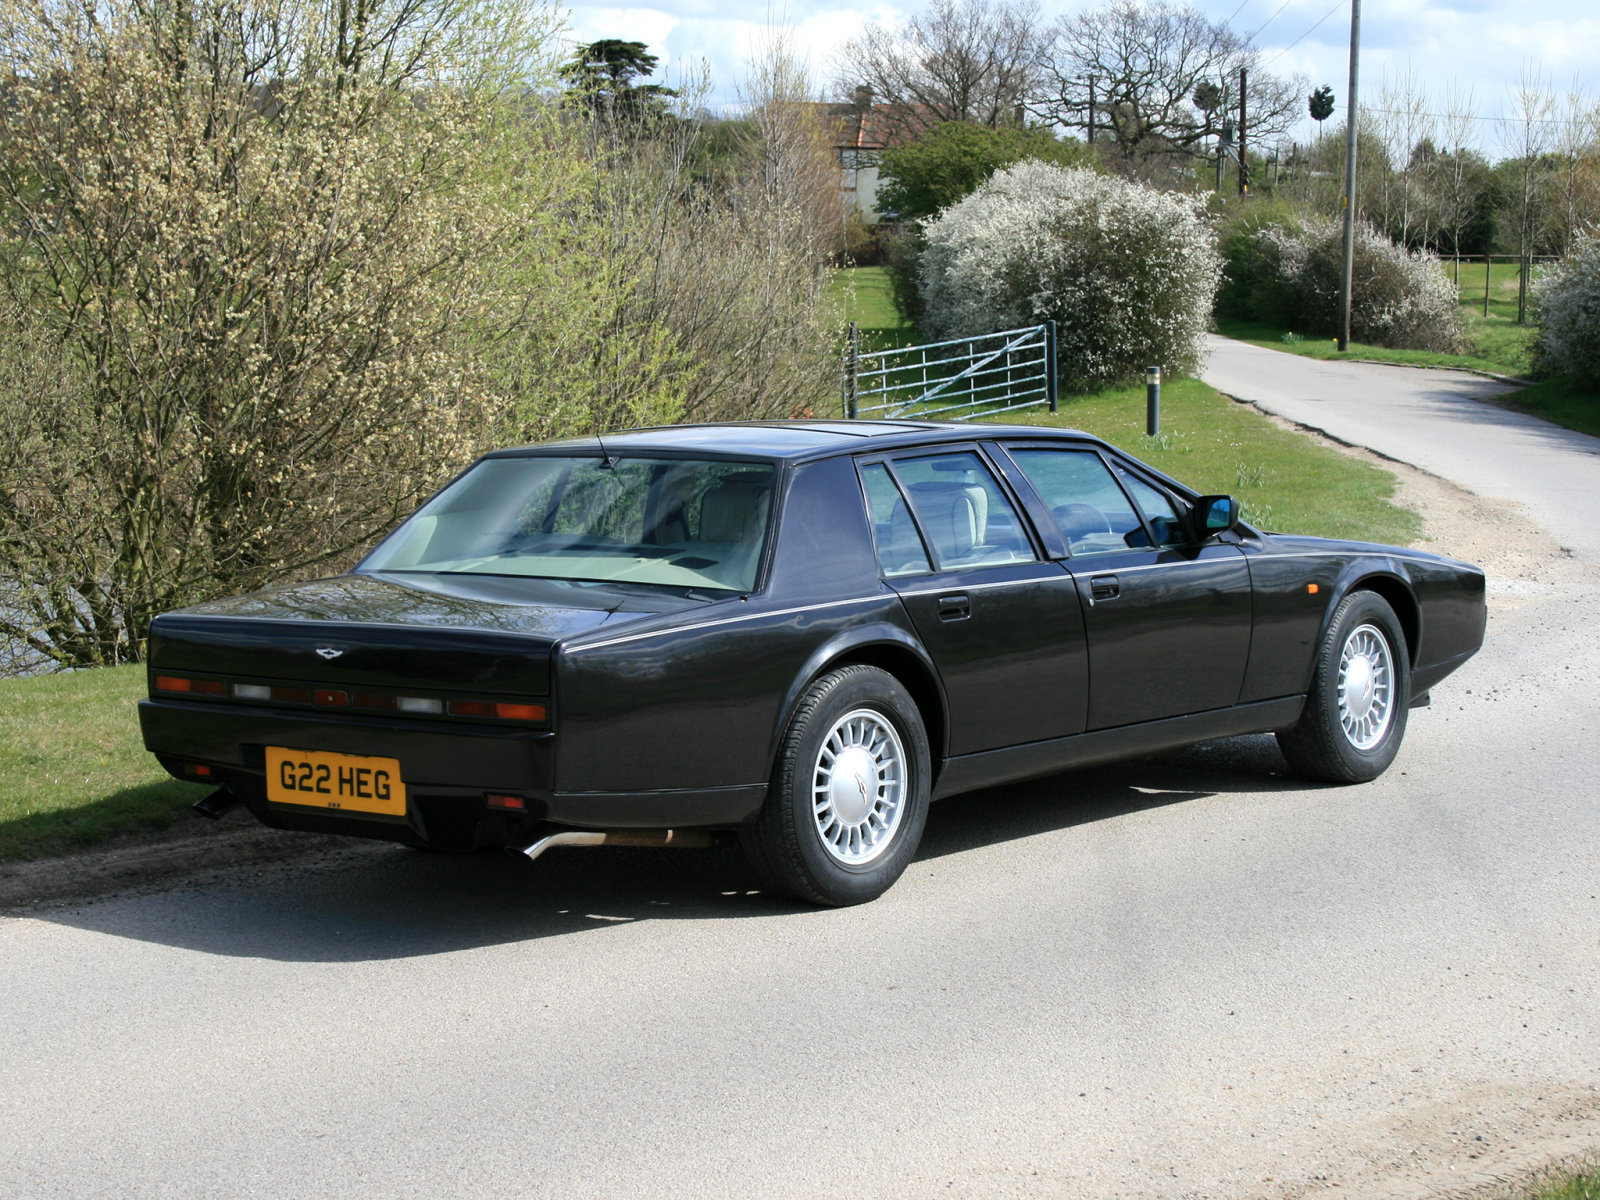 Car Style Critic: Aston Martin Lagonda 2: Too Long, Too Low?